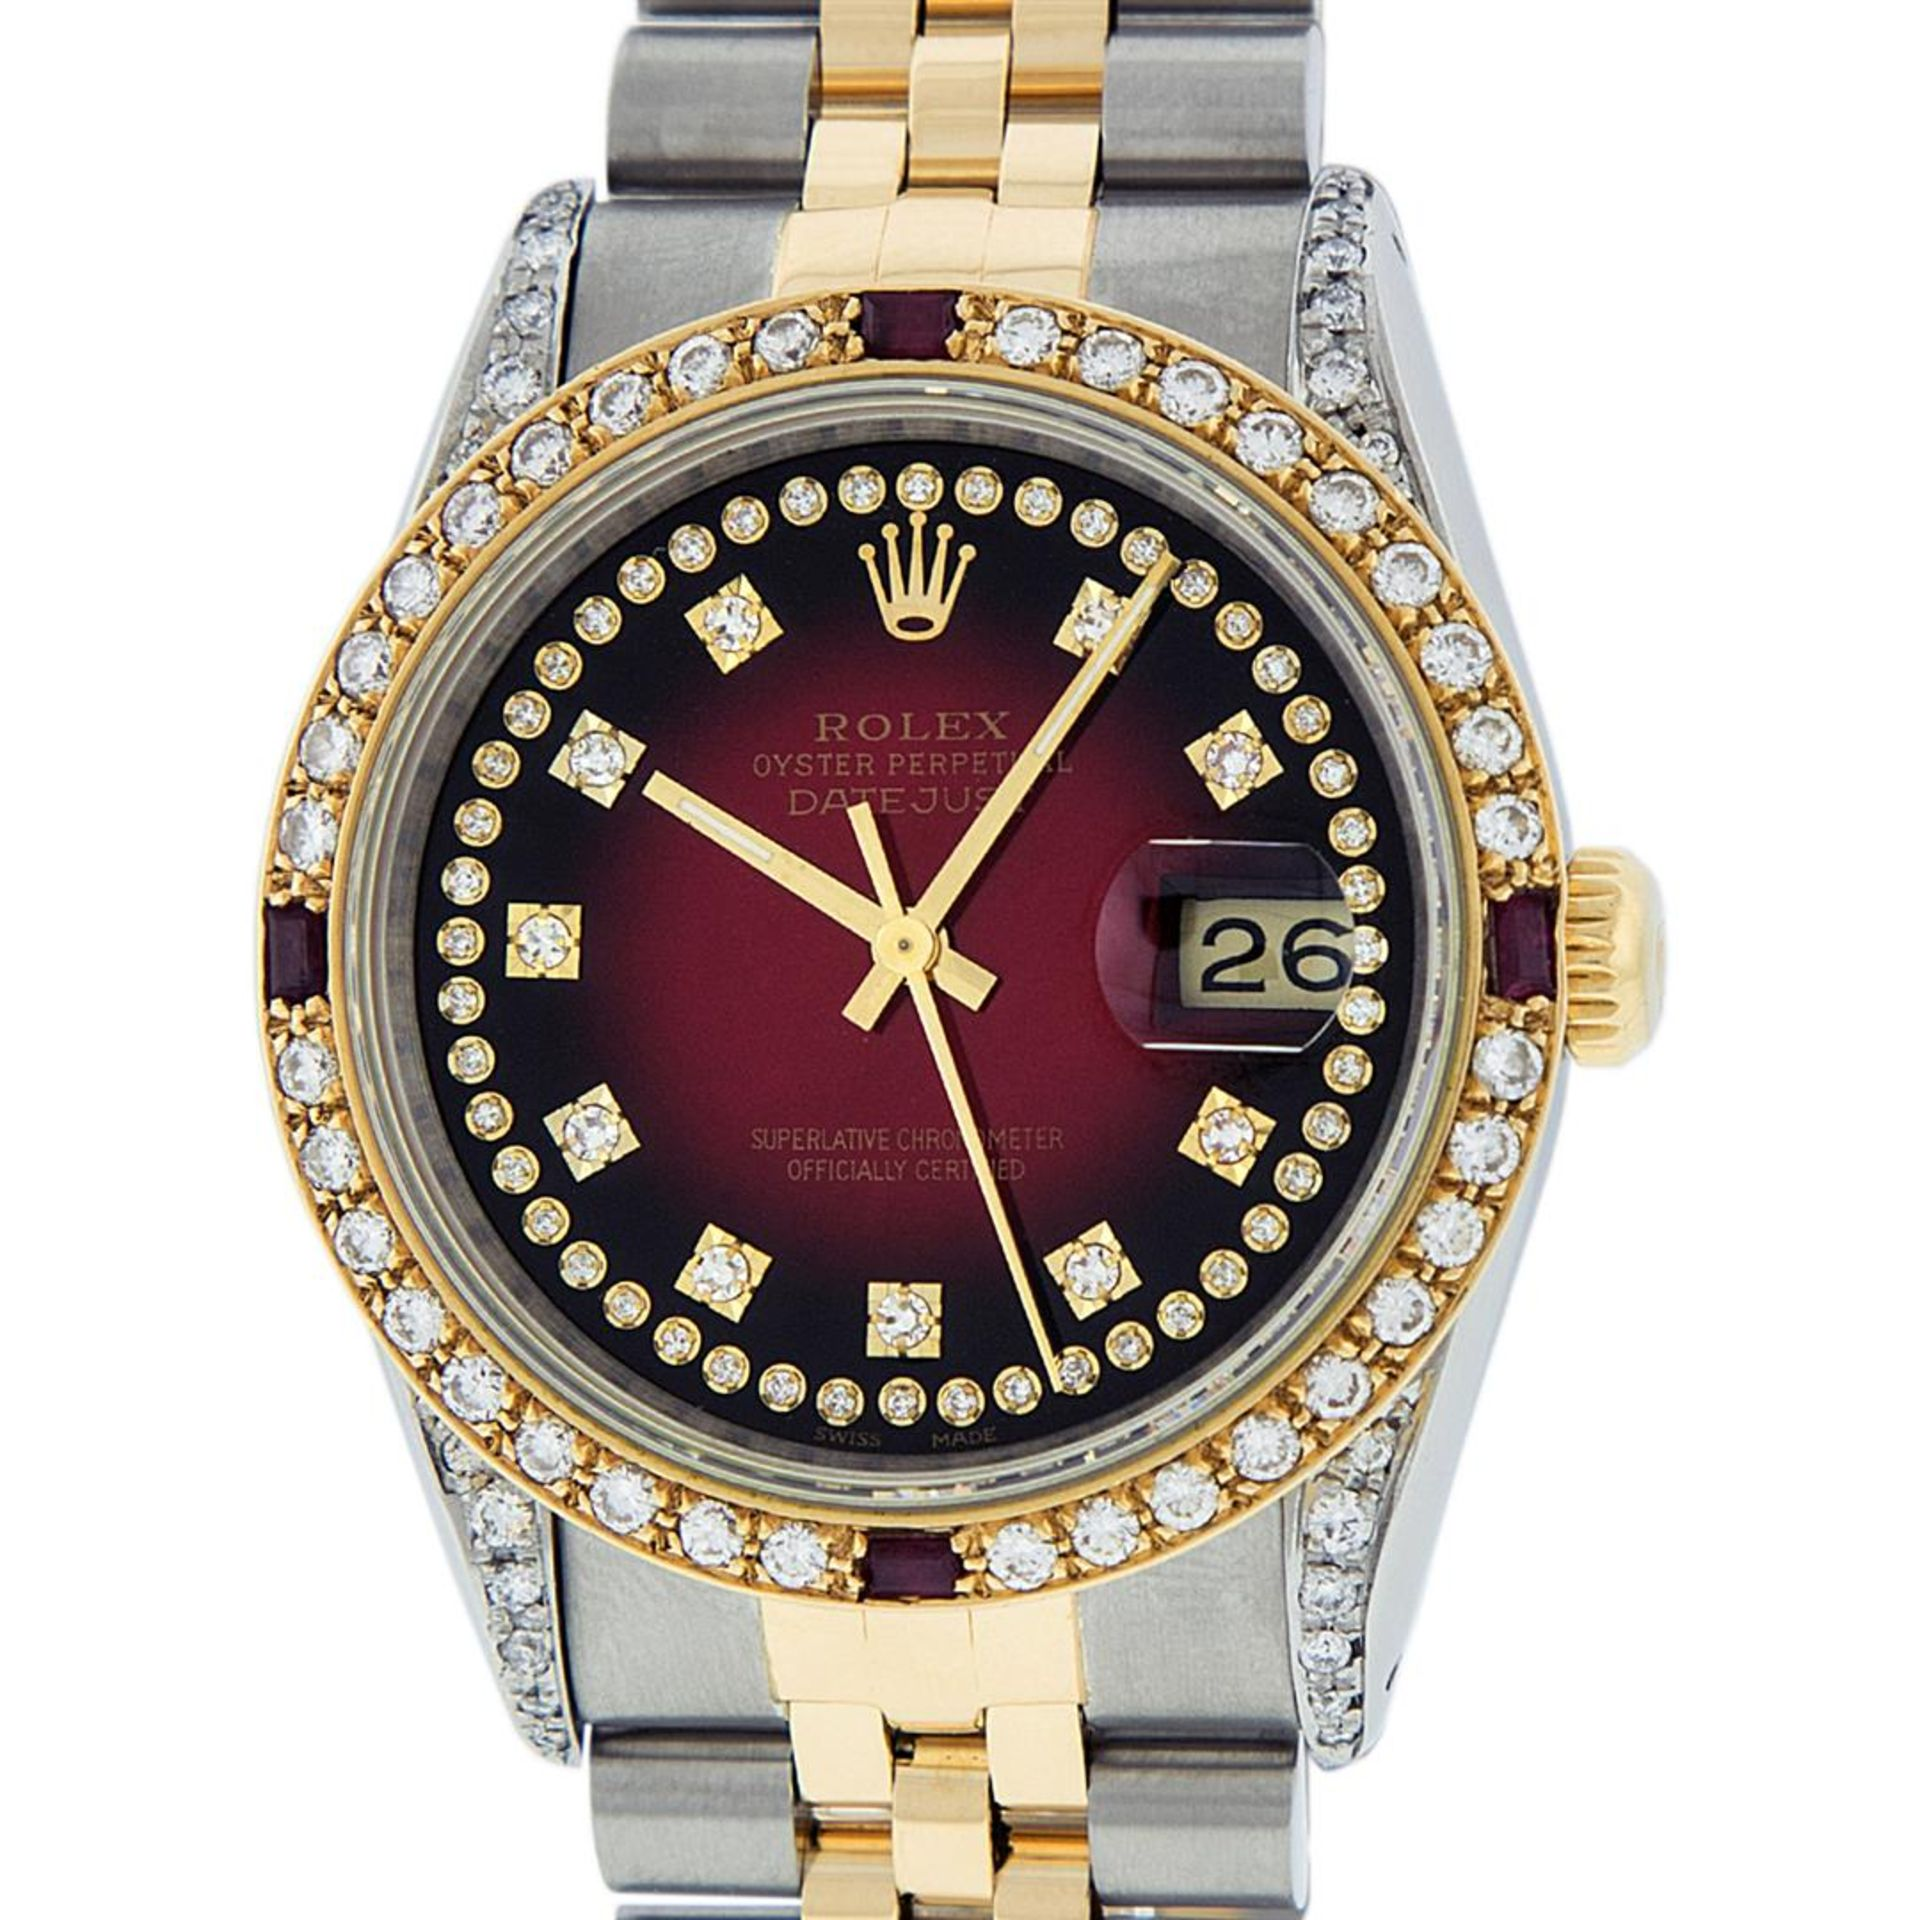 Rolex Mens 2 Tone Lugs Red Vignette Diamond String & Ruby Datejust Wristwatch - Image 3 of 9